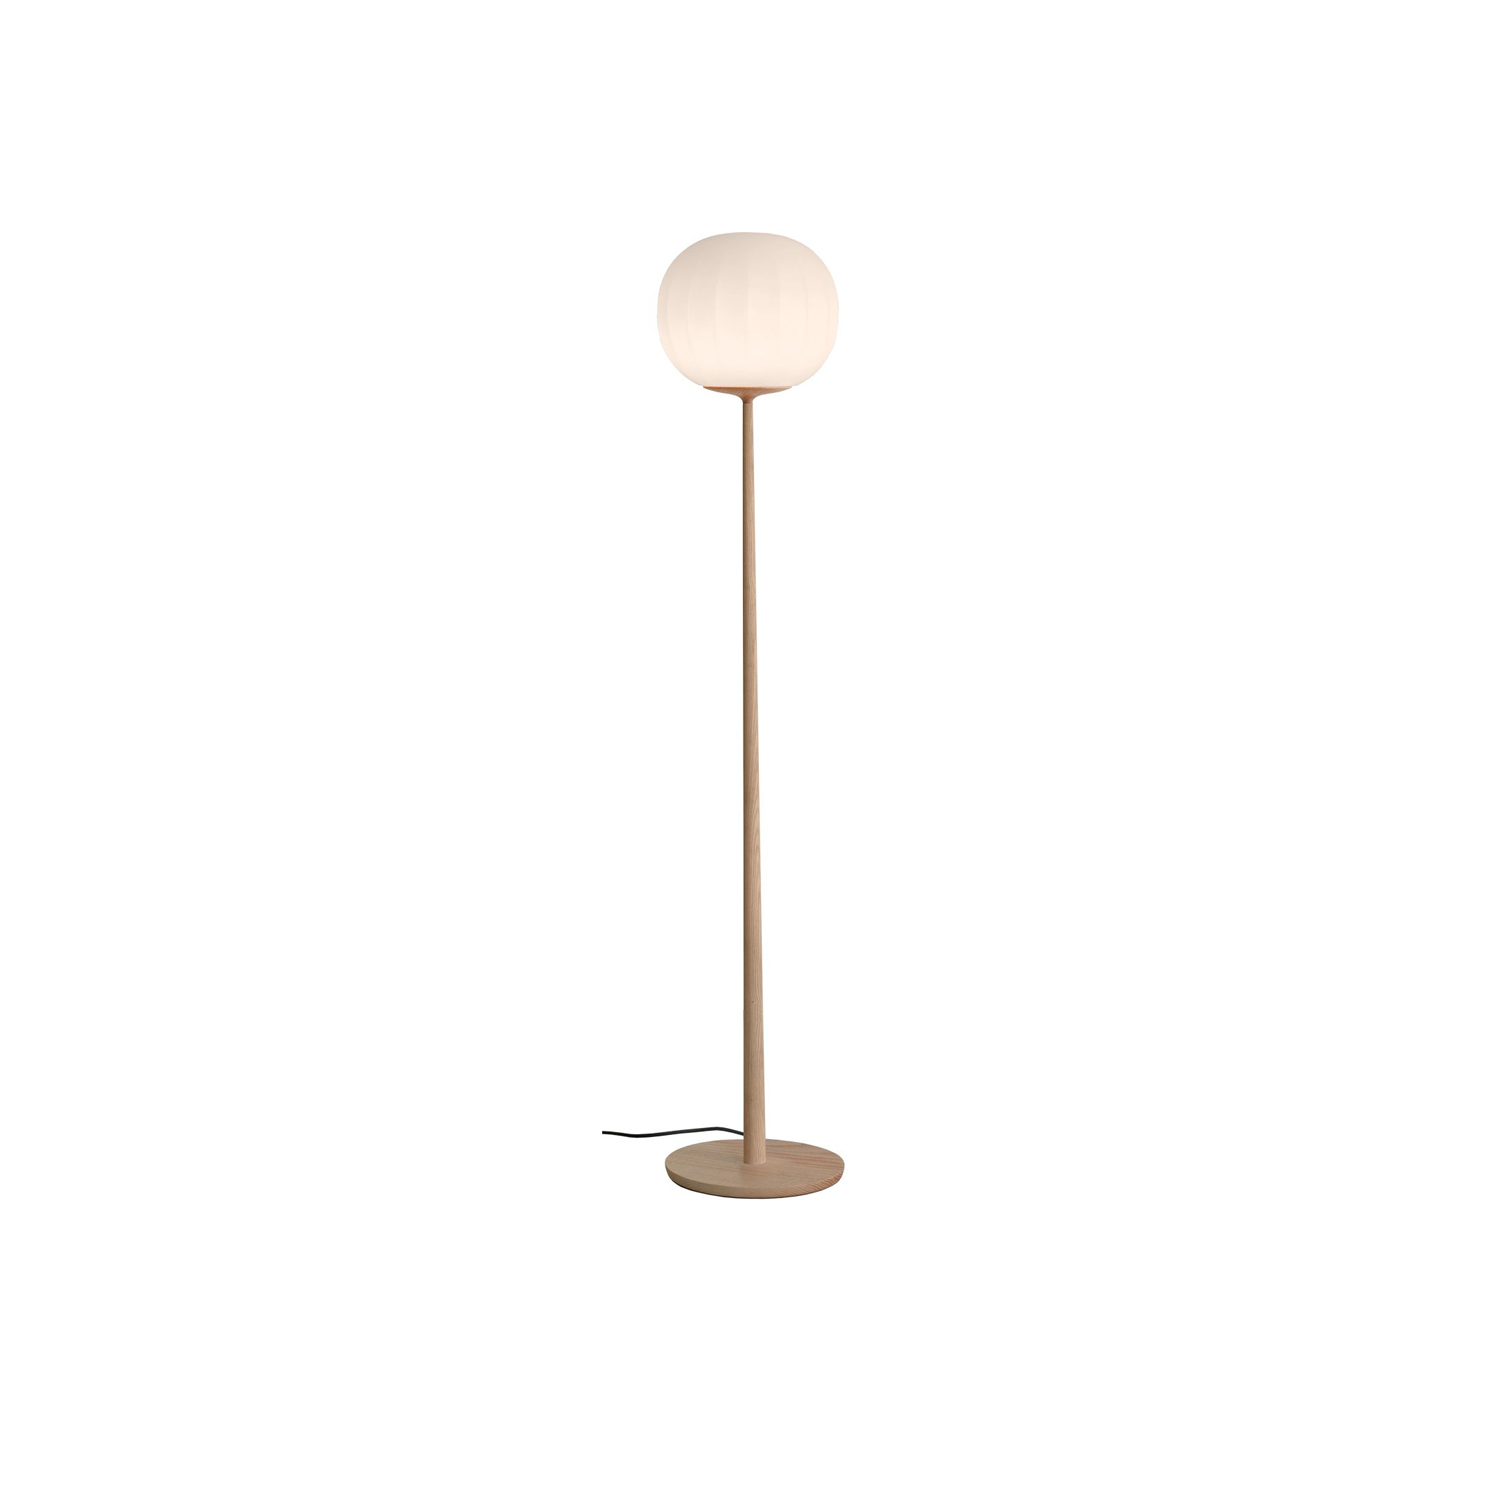 Lita Floor Lamp - Lita is a decorative lamps, the result of a delicate design process that mixes imagery, signs, geometric textures and natural materials.  The diffuser in opaline blown glass – whose surface is scanned by the repetition of slight vertical cusps that vanish at the extremities – is combined with a wooden structure, making Lita a product with a forceful material character.  | Matter of Stuff